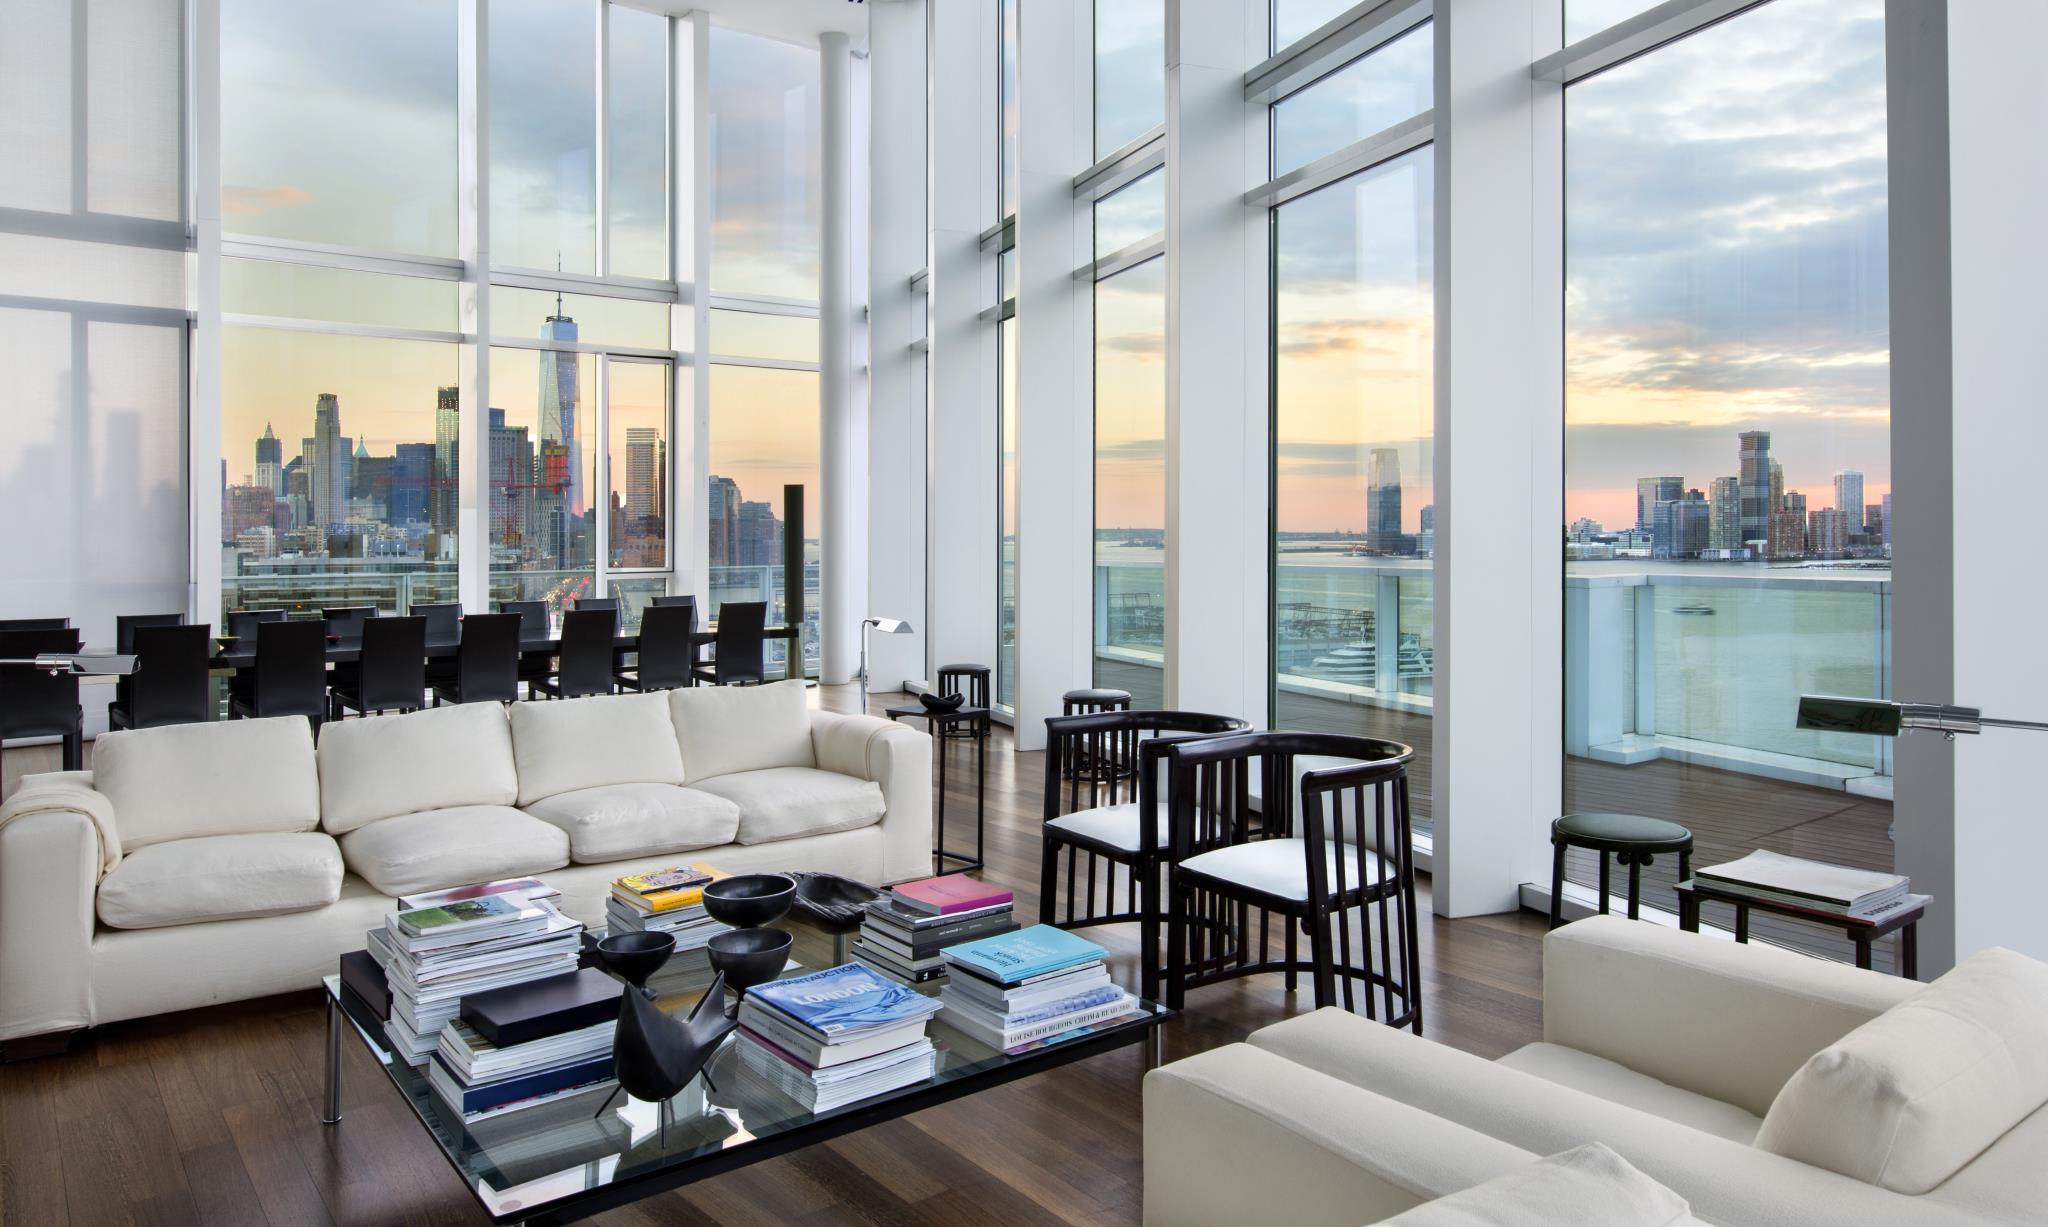 New york luxury homes and new york luxury real estate property search results luxury portfolio